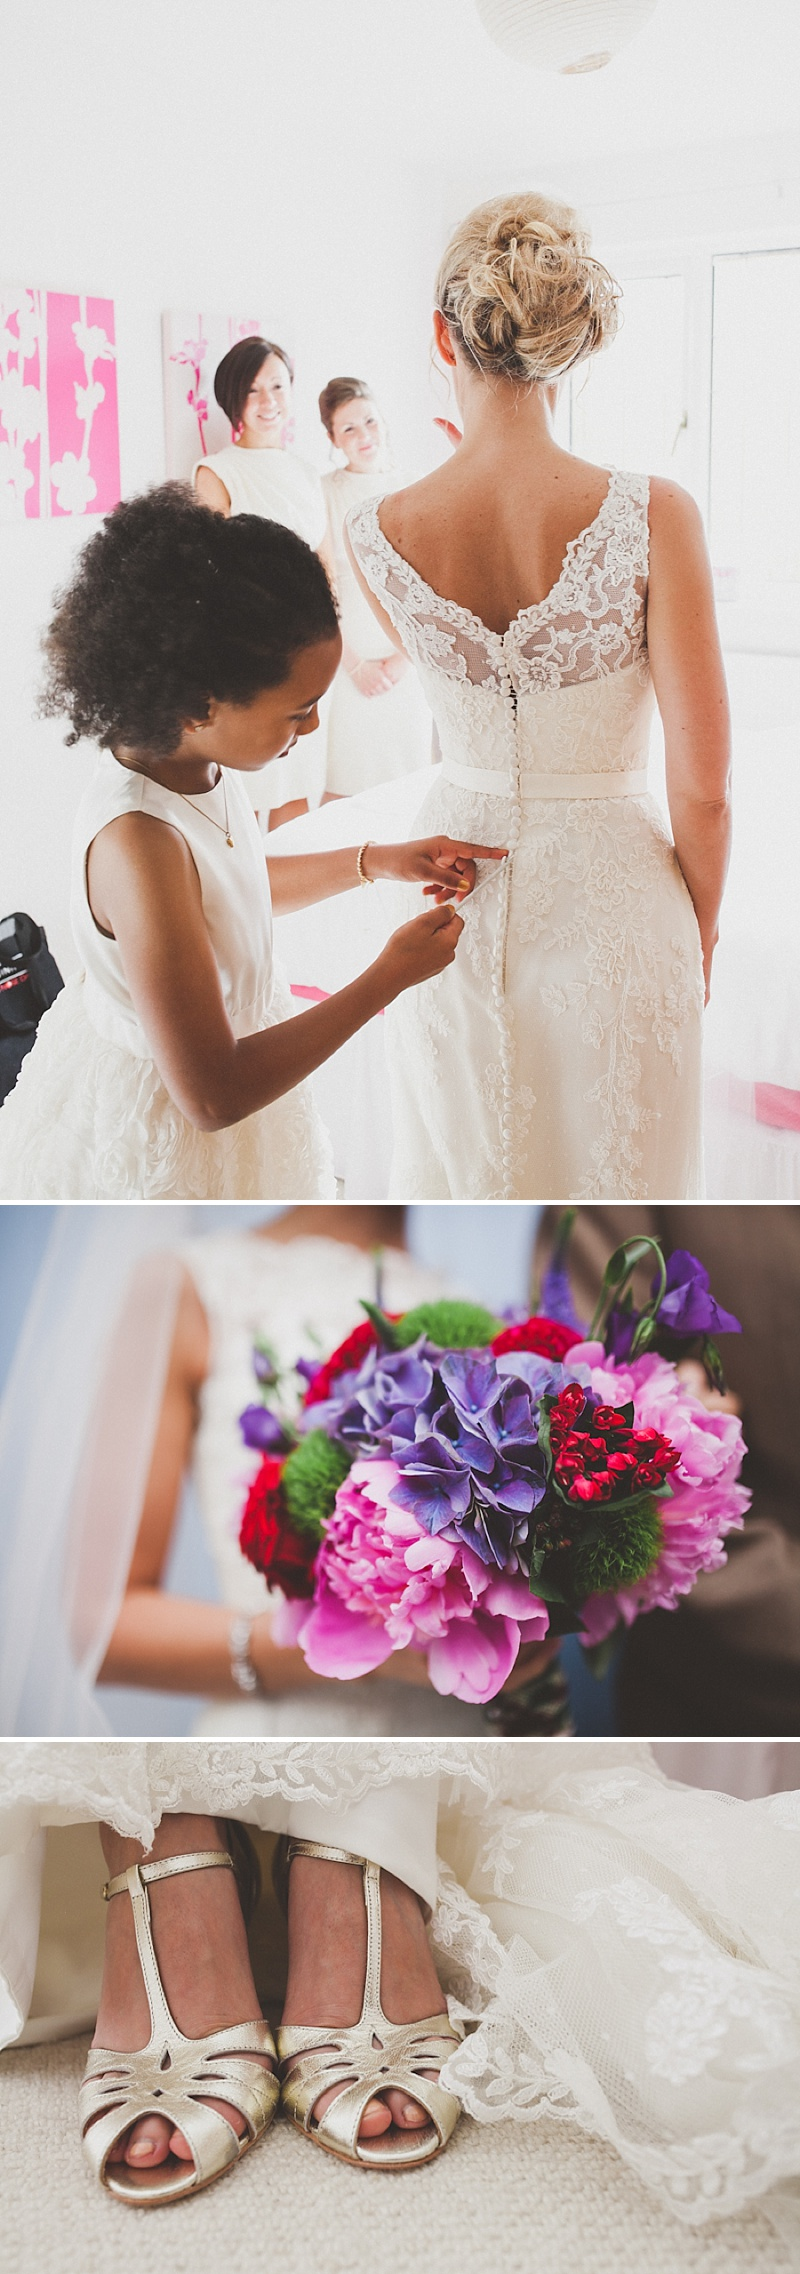 A Colourful Contemporary Wedding At Fazeley Studios Digbeth Bride in Justin Alexander Gown Photography by Jordanna Marston 0003 Love In A Hopeless Place.